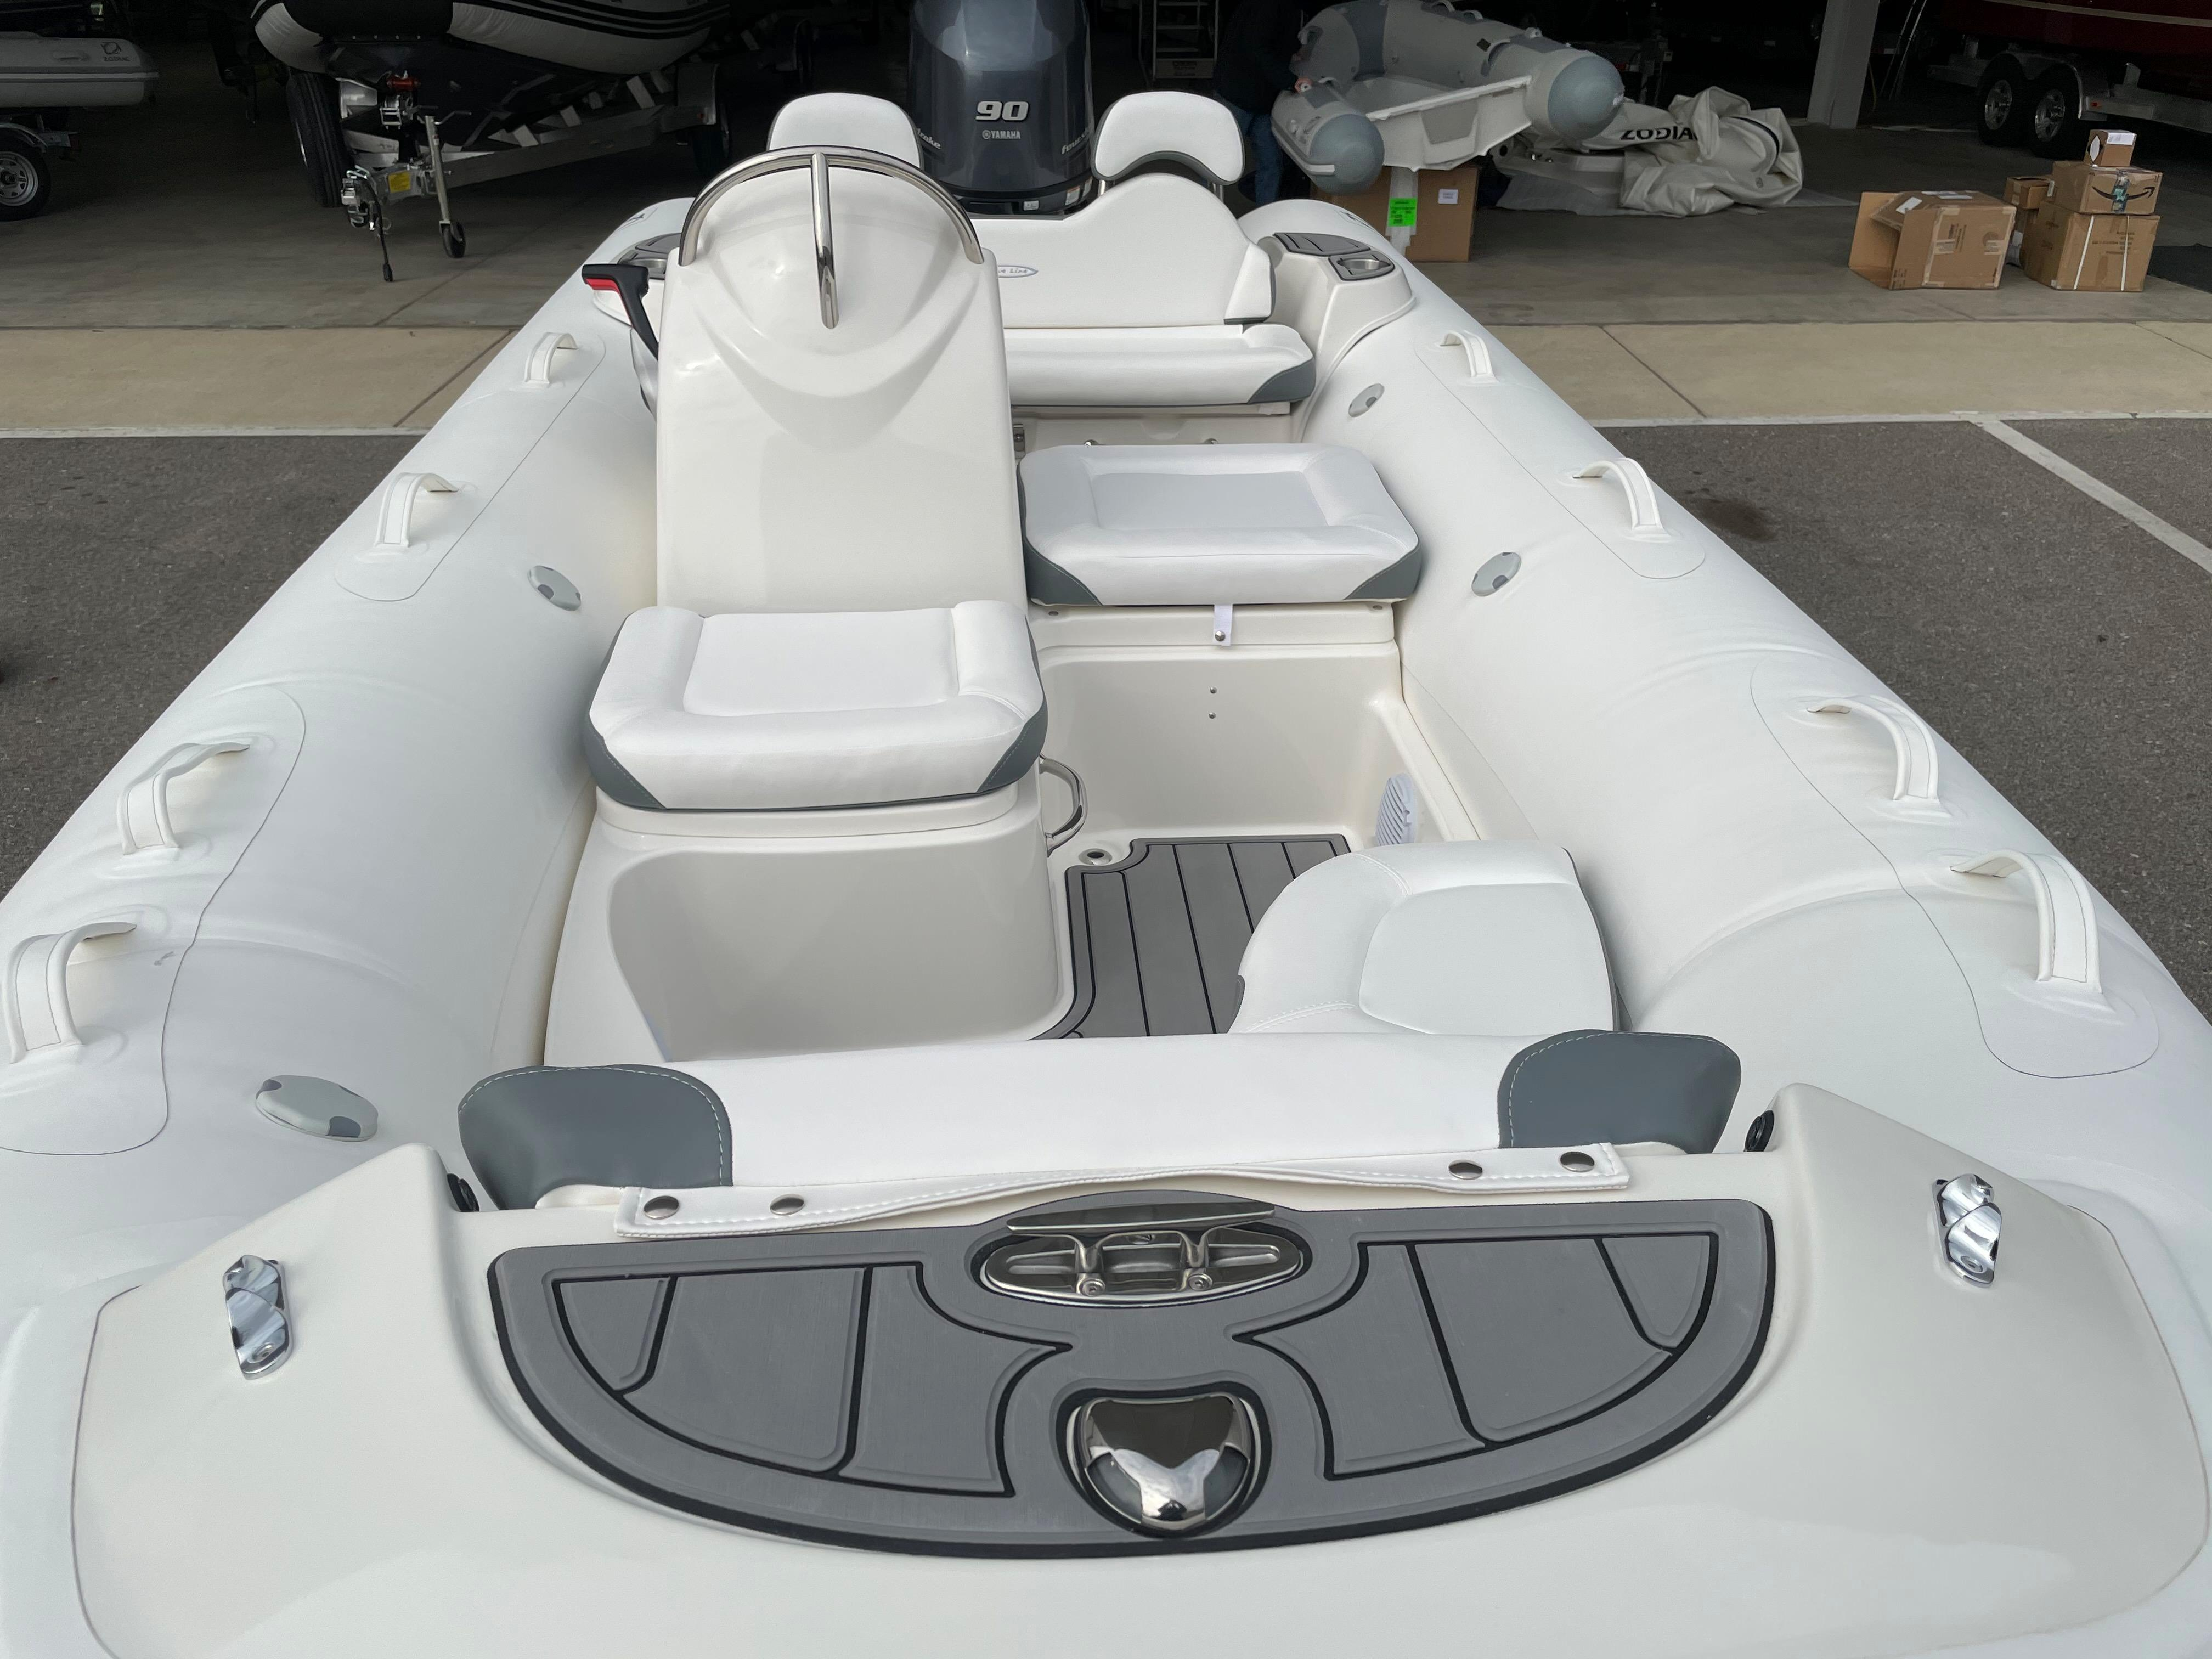 2022 Zodiac Yachtline 490 Deluxe NEO GL Edition 90hp On Order, Image 12